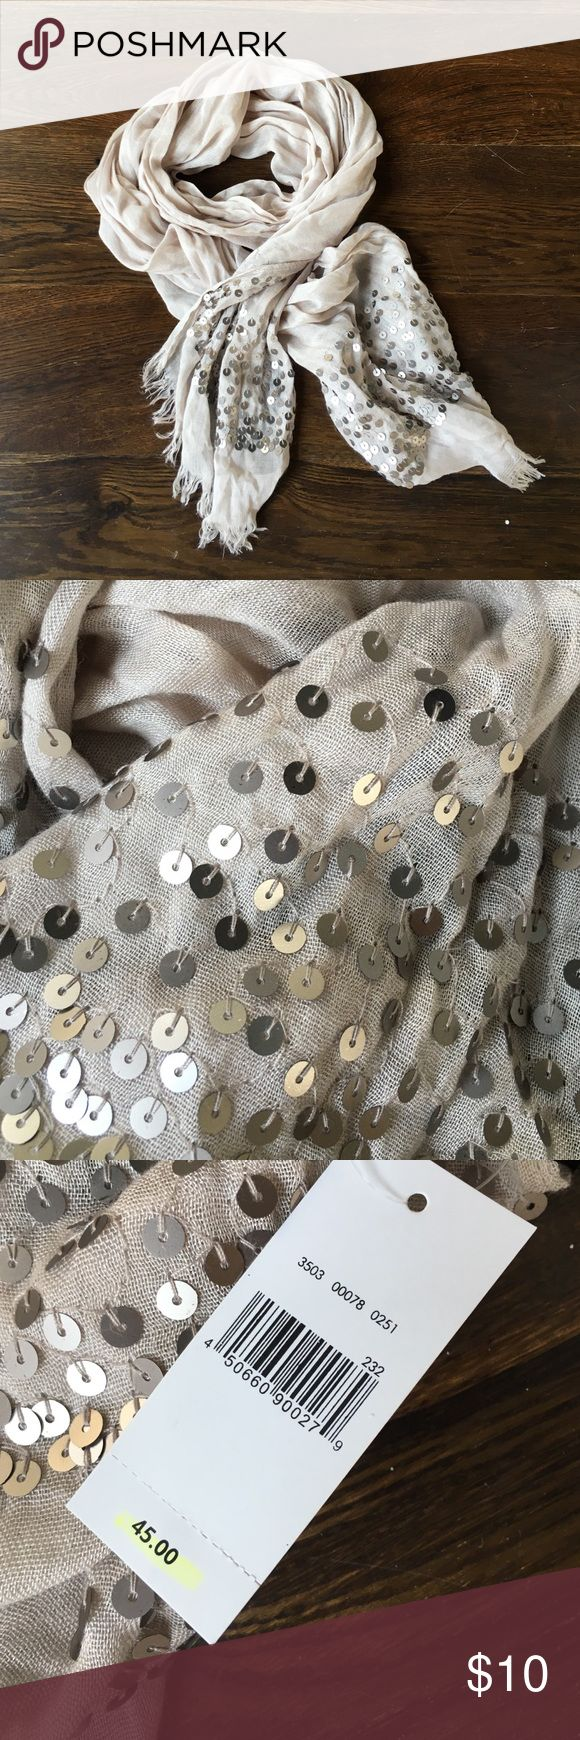 Statement scarf Nude scarf with sequin ends. Perfect for upcoming holiday looks. Never worn and new with tags. <smoke free home> Van Heusen Accessories Scarves & Wraps